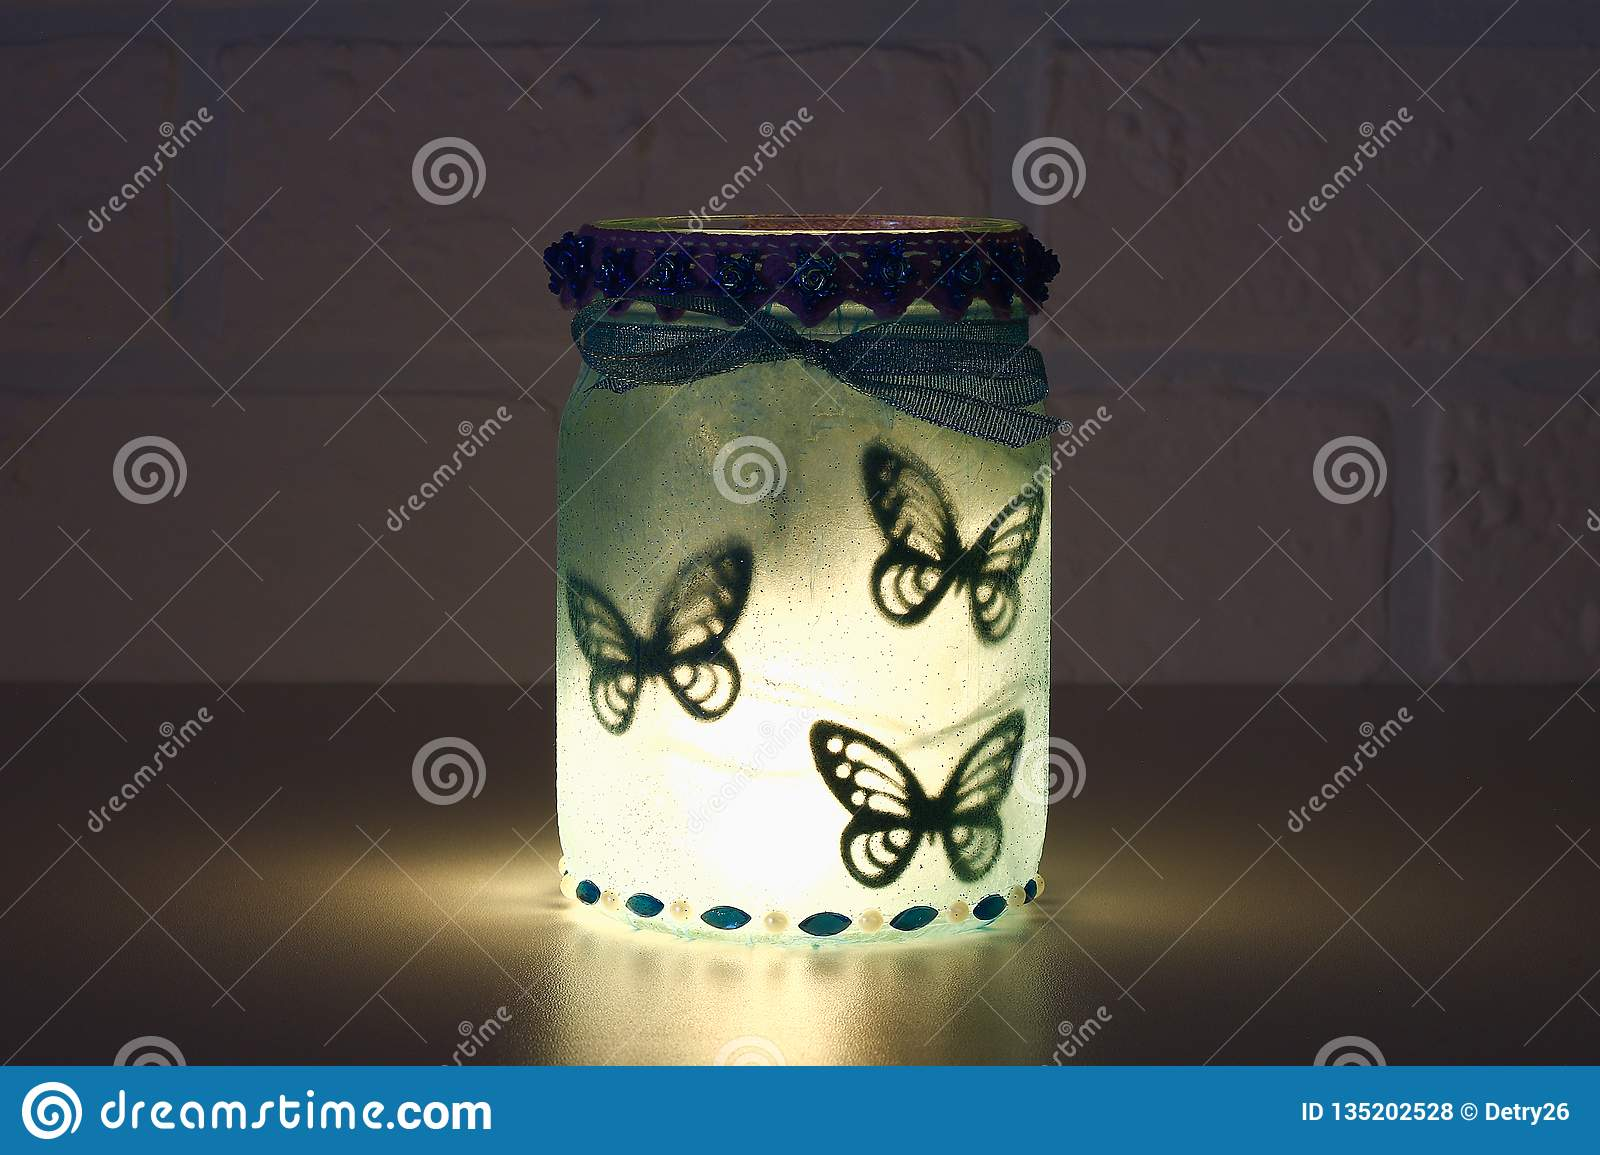 Diy Fairy Jar On White Brick Wall Background Gift Ideas Decor St February 14 Valentines Day Love Stock Photo Image Of Beautiful Wedding 135202528